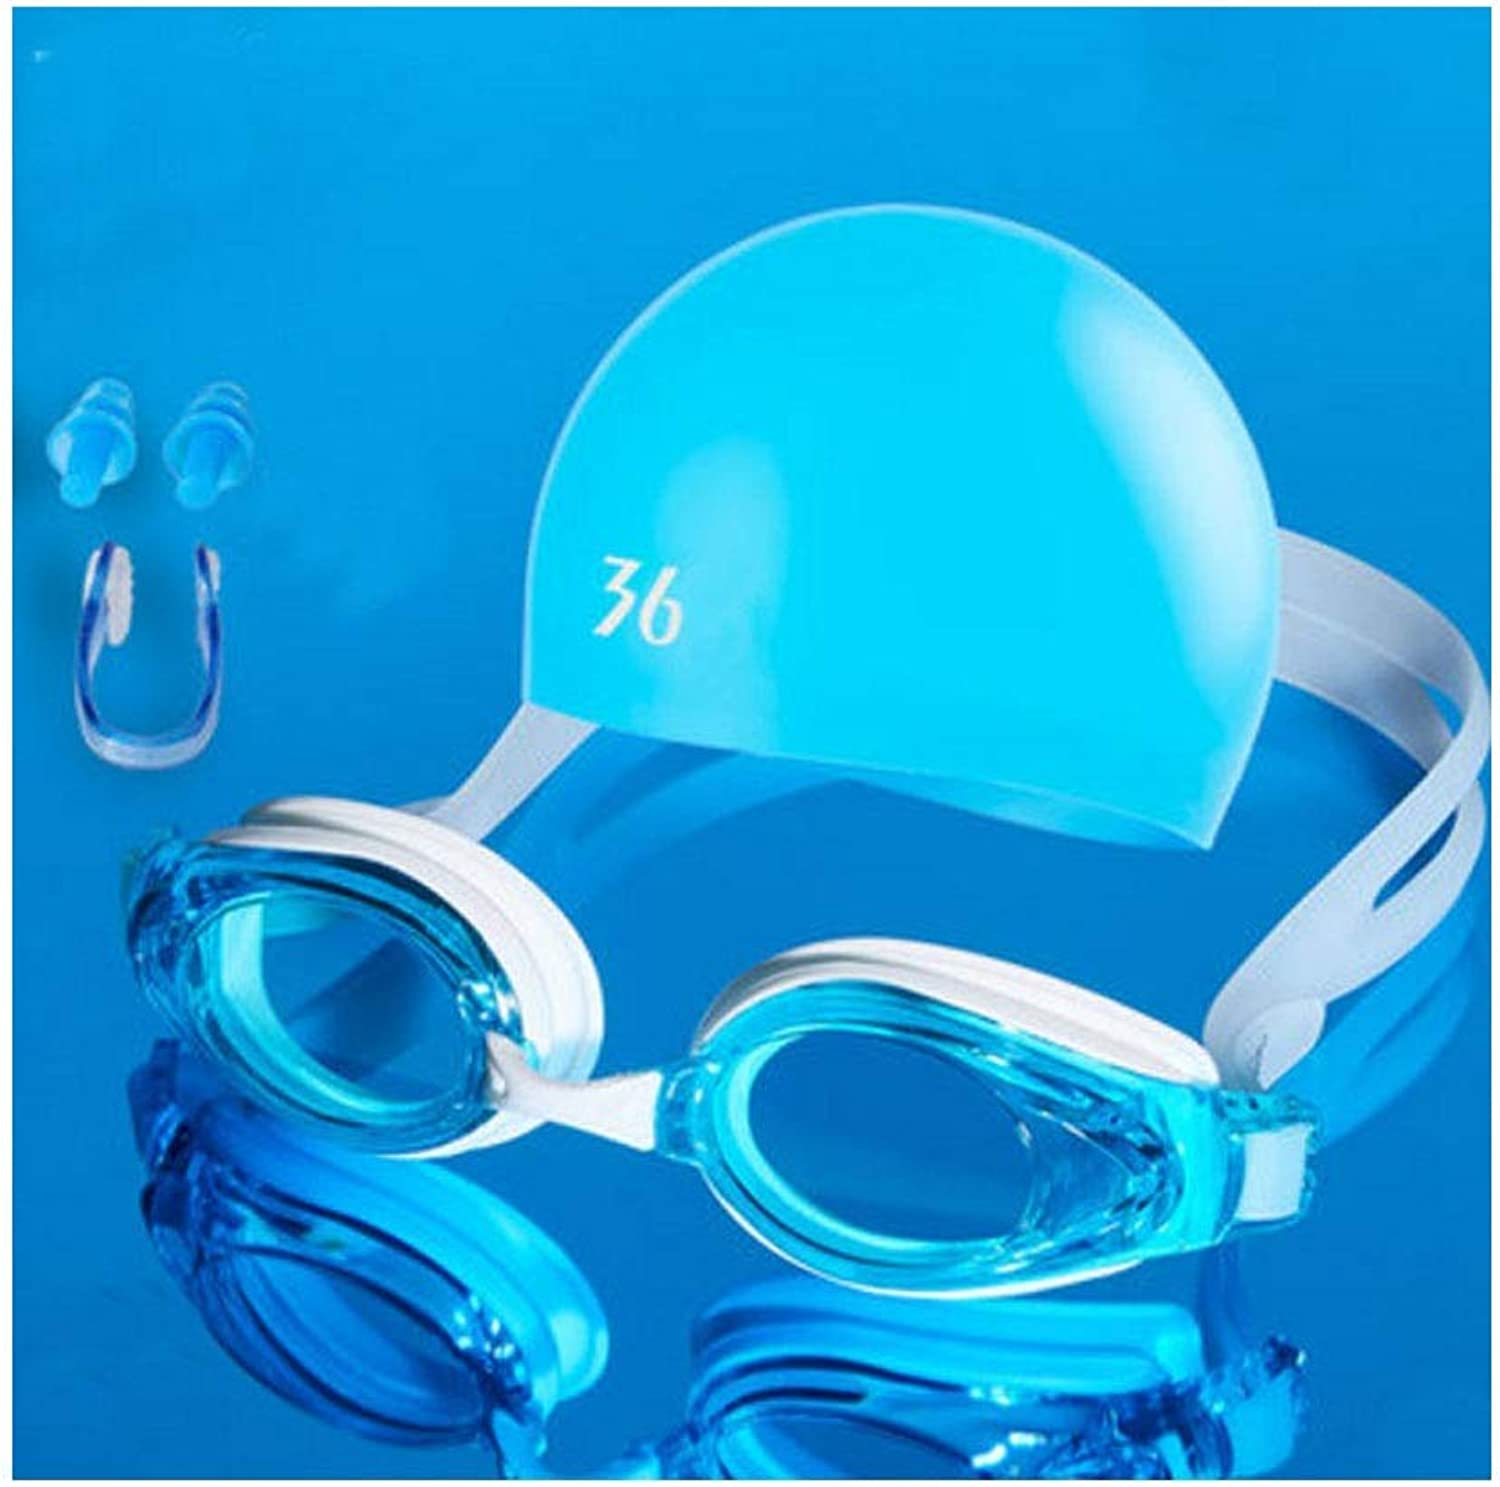 Chengjinxiang Goggles, Transparent Swimming Goggles, Waterproof and AntiFog Professional Swimming Equipment (Black, Gifts; Nose Clip + Earplugs + Swimming Cap) Good Looking